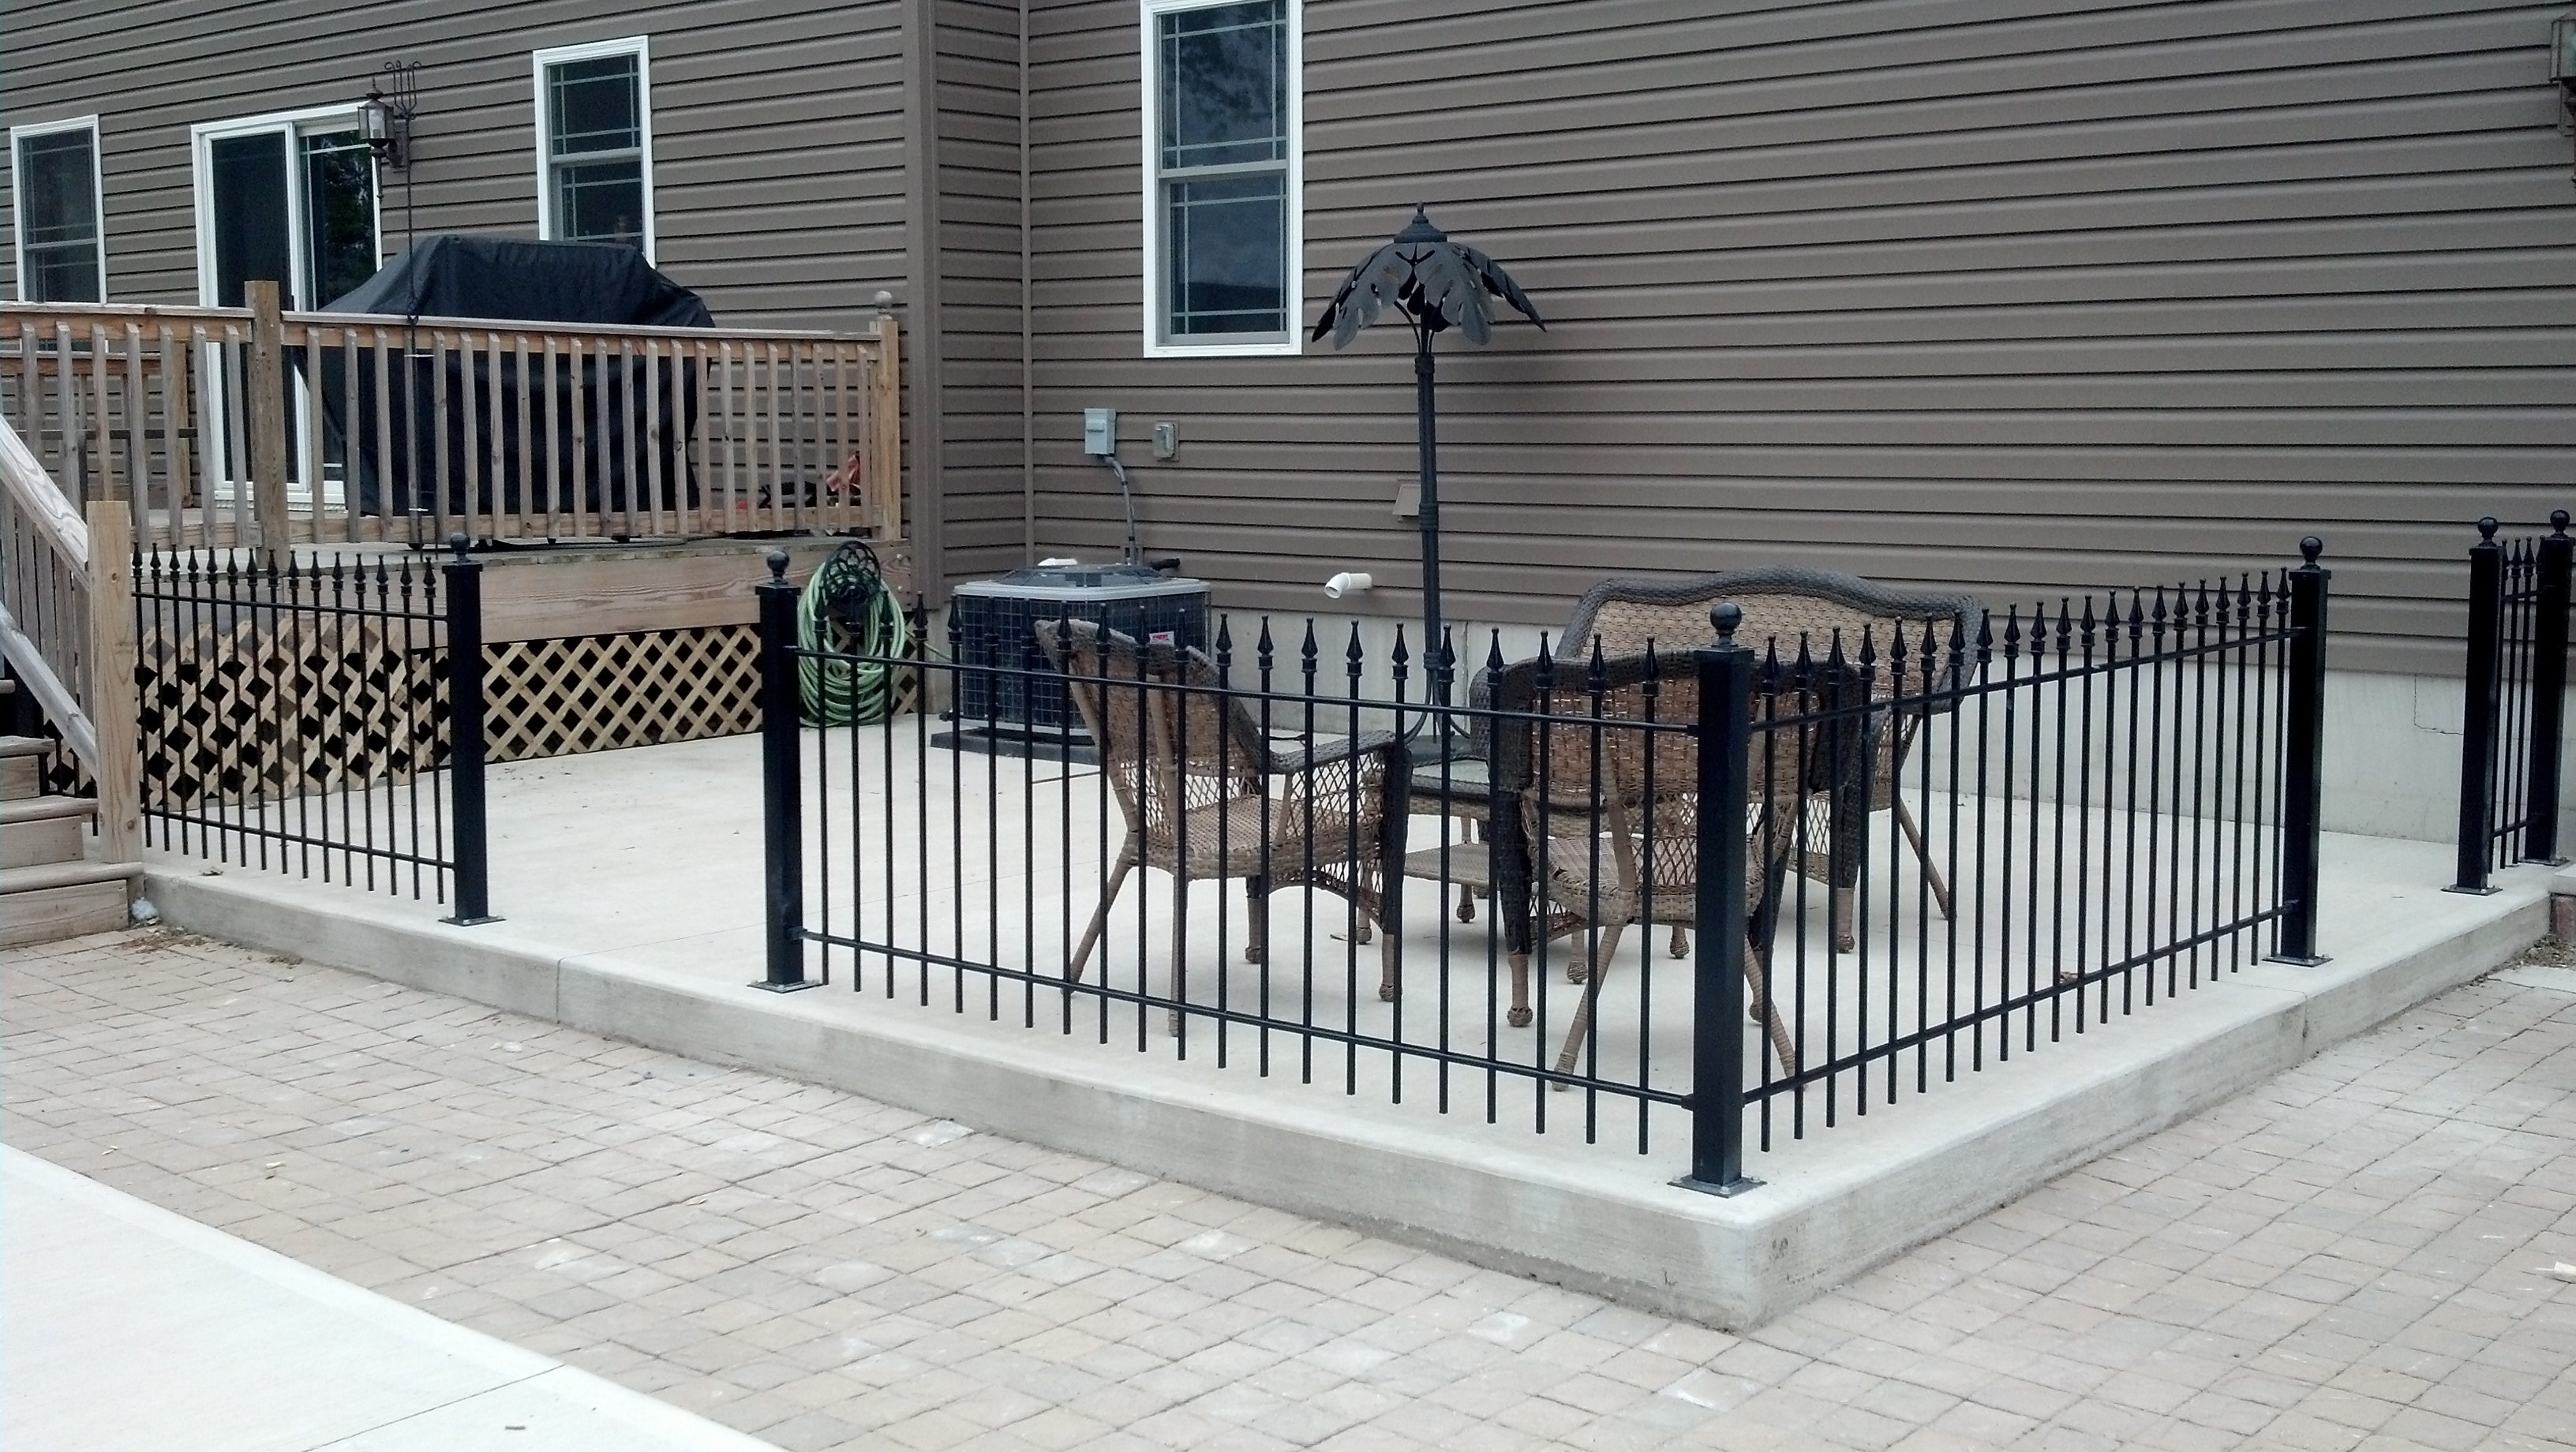 Lron Fence Patio Design Ideas